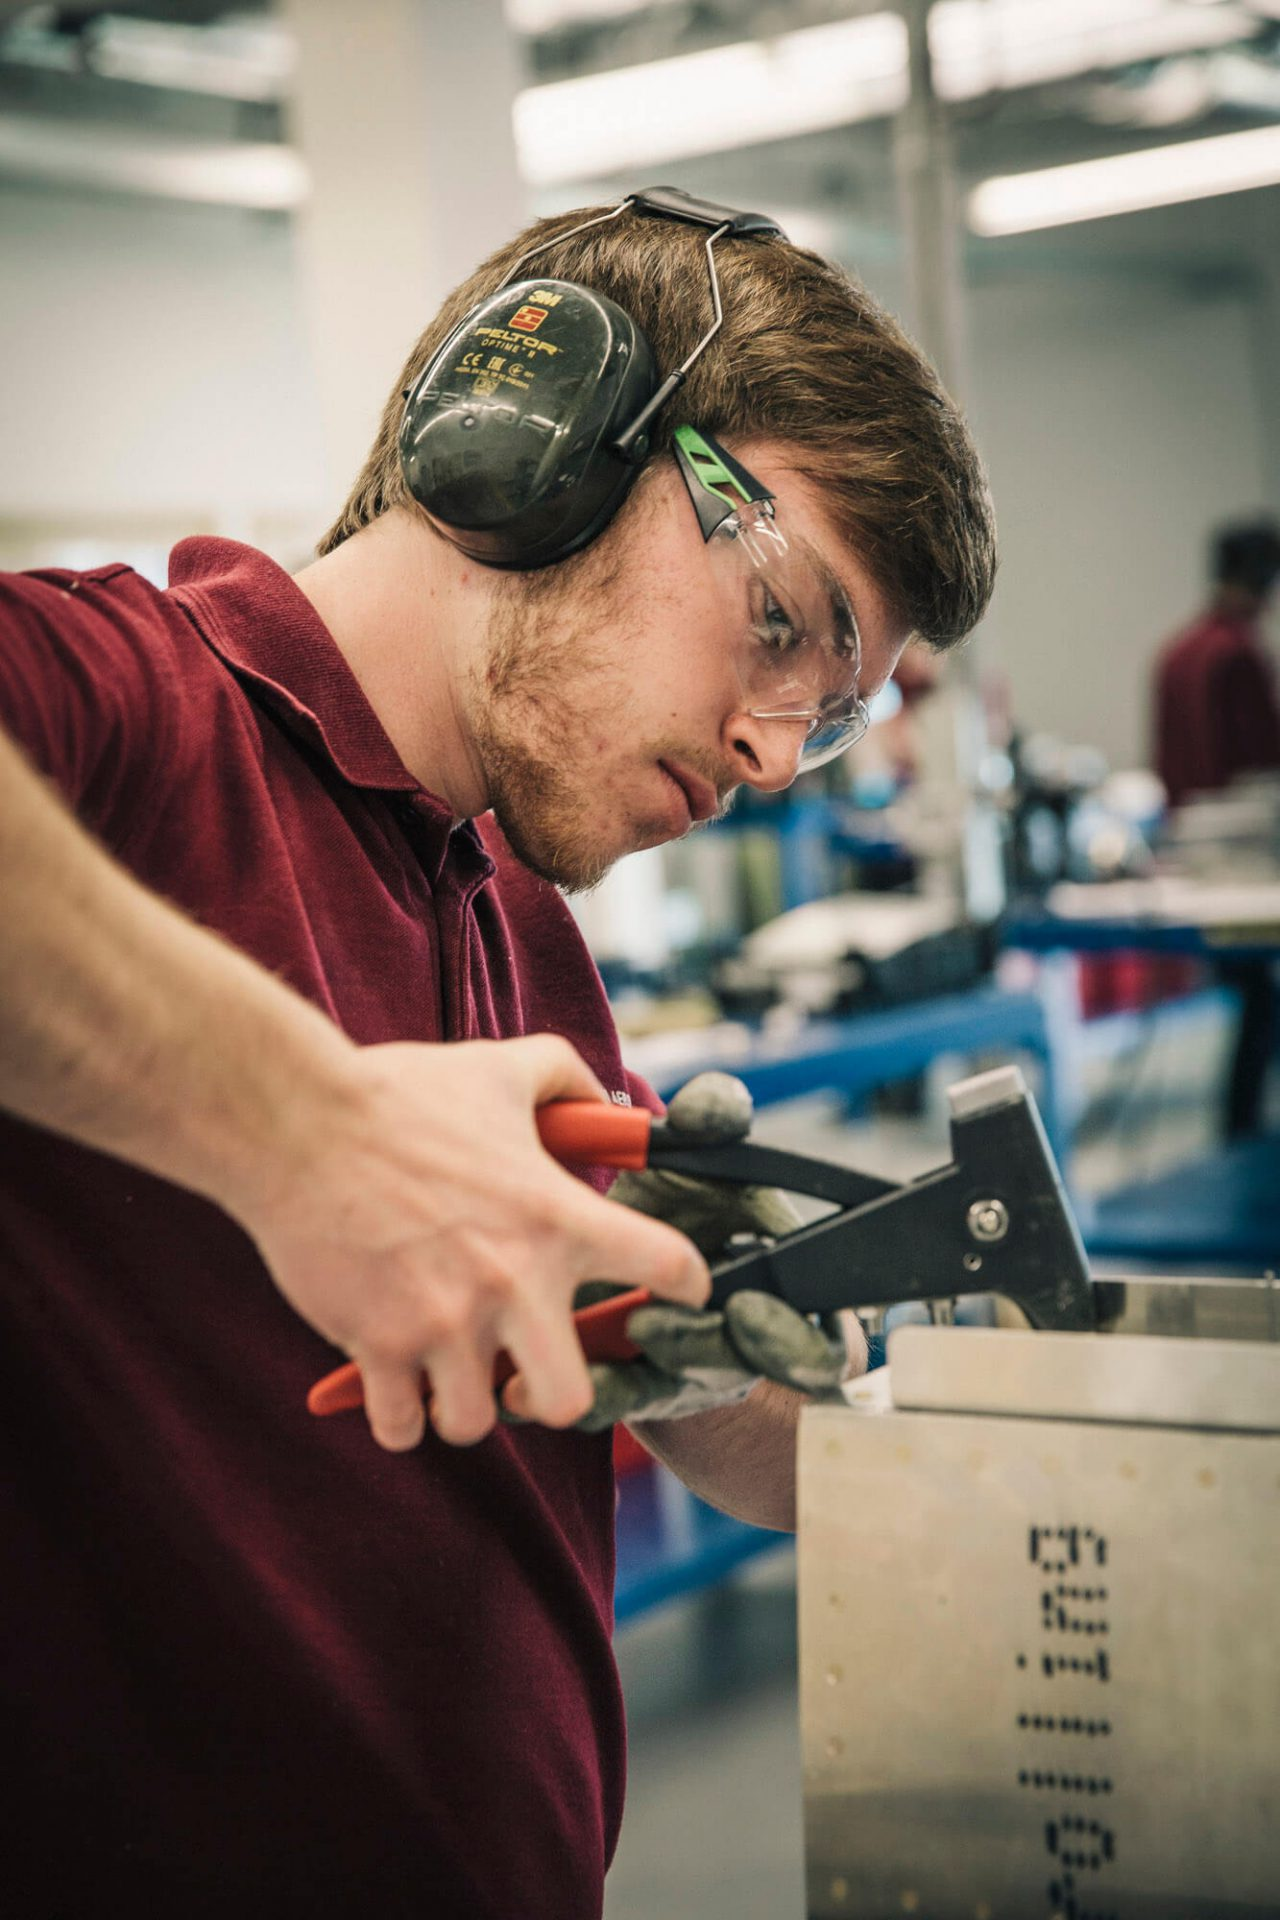 A GKN engineering student works with ear-defenders and goggles on